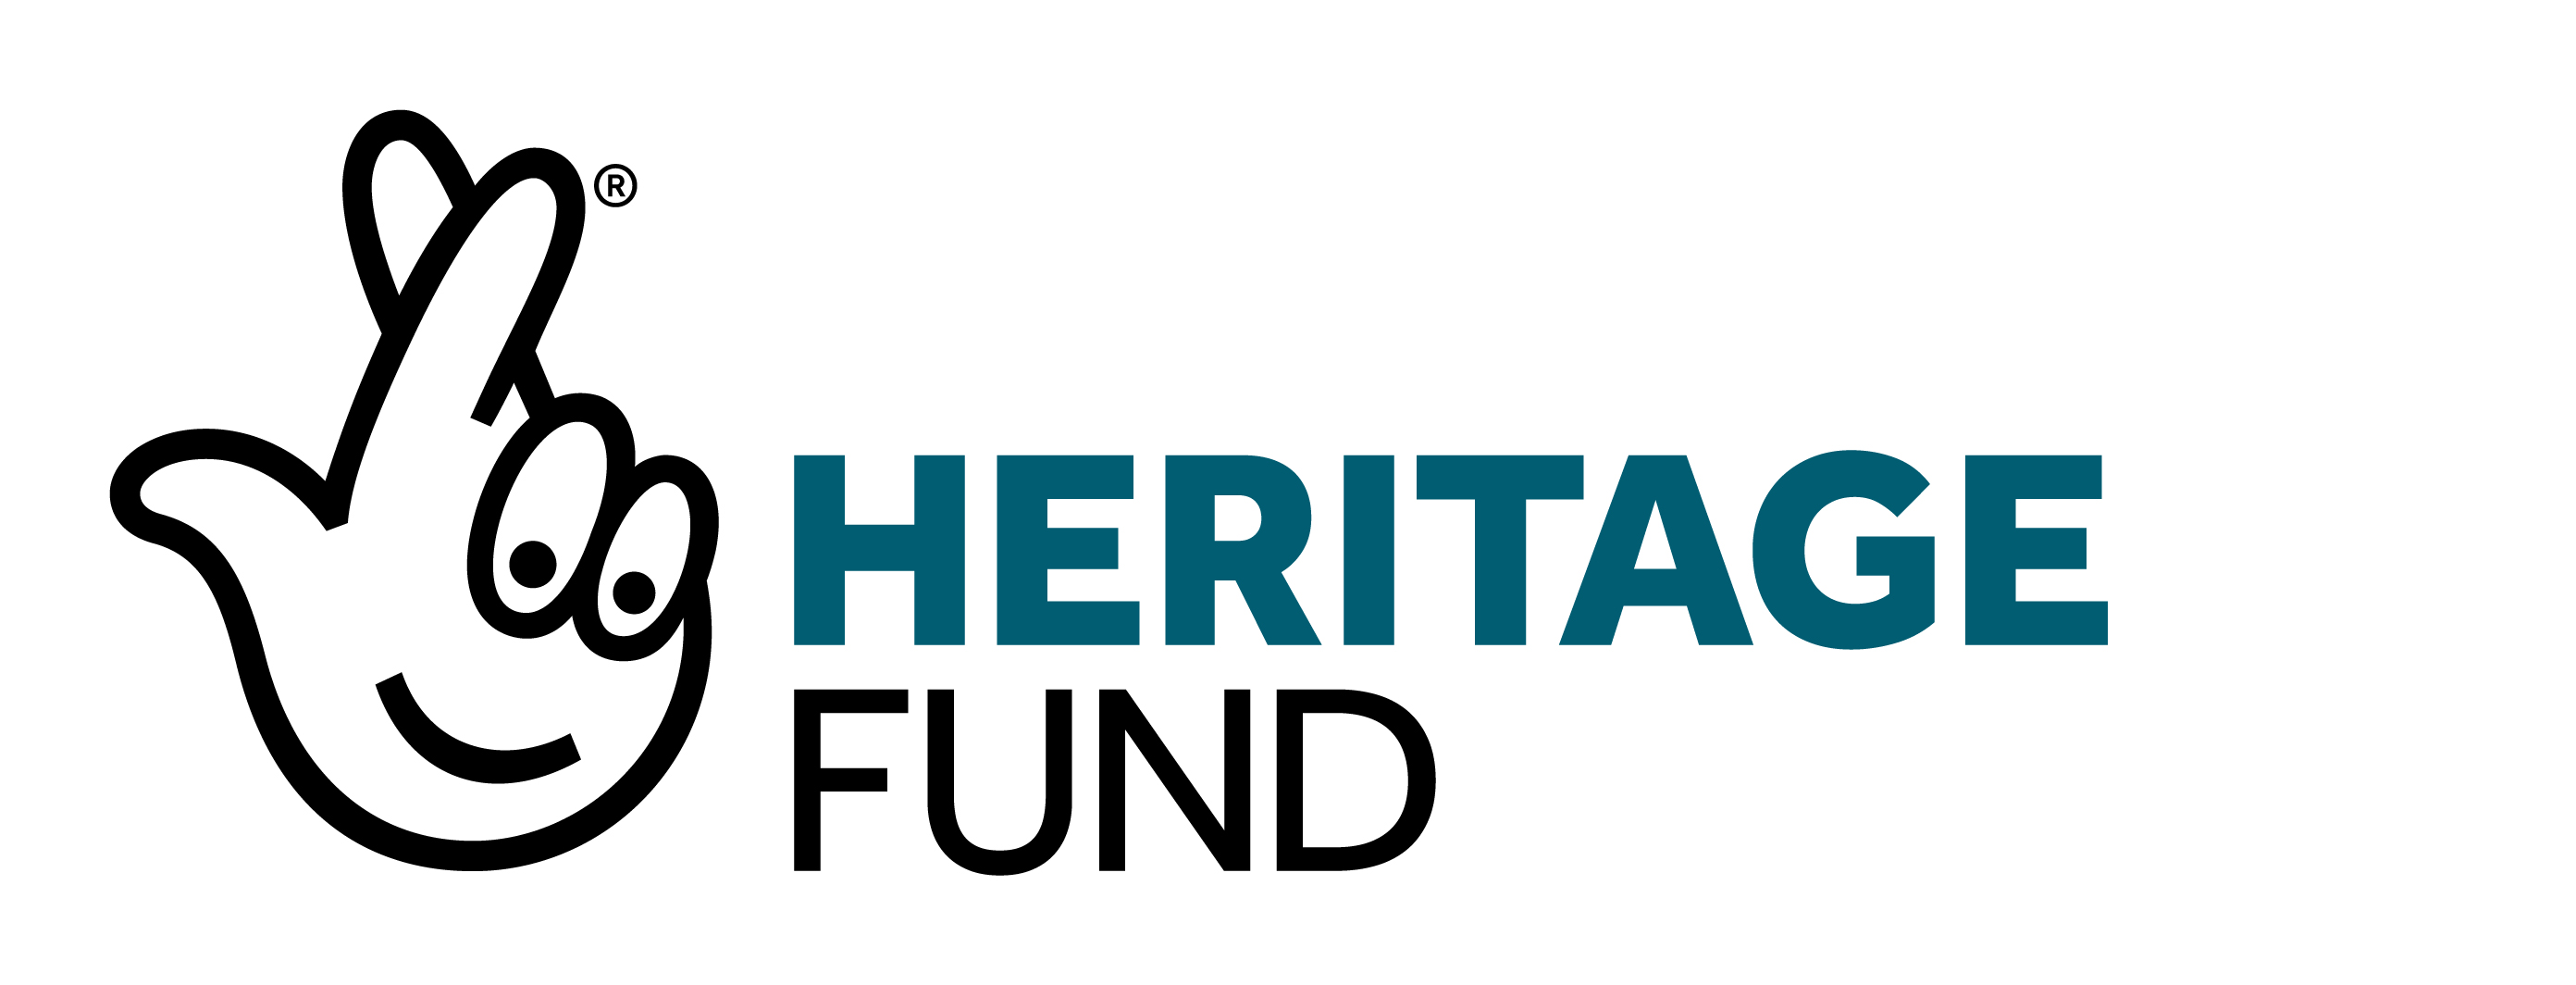 The Heritage Fund logo with crossed fingers